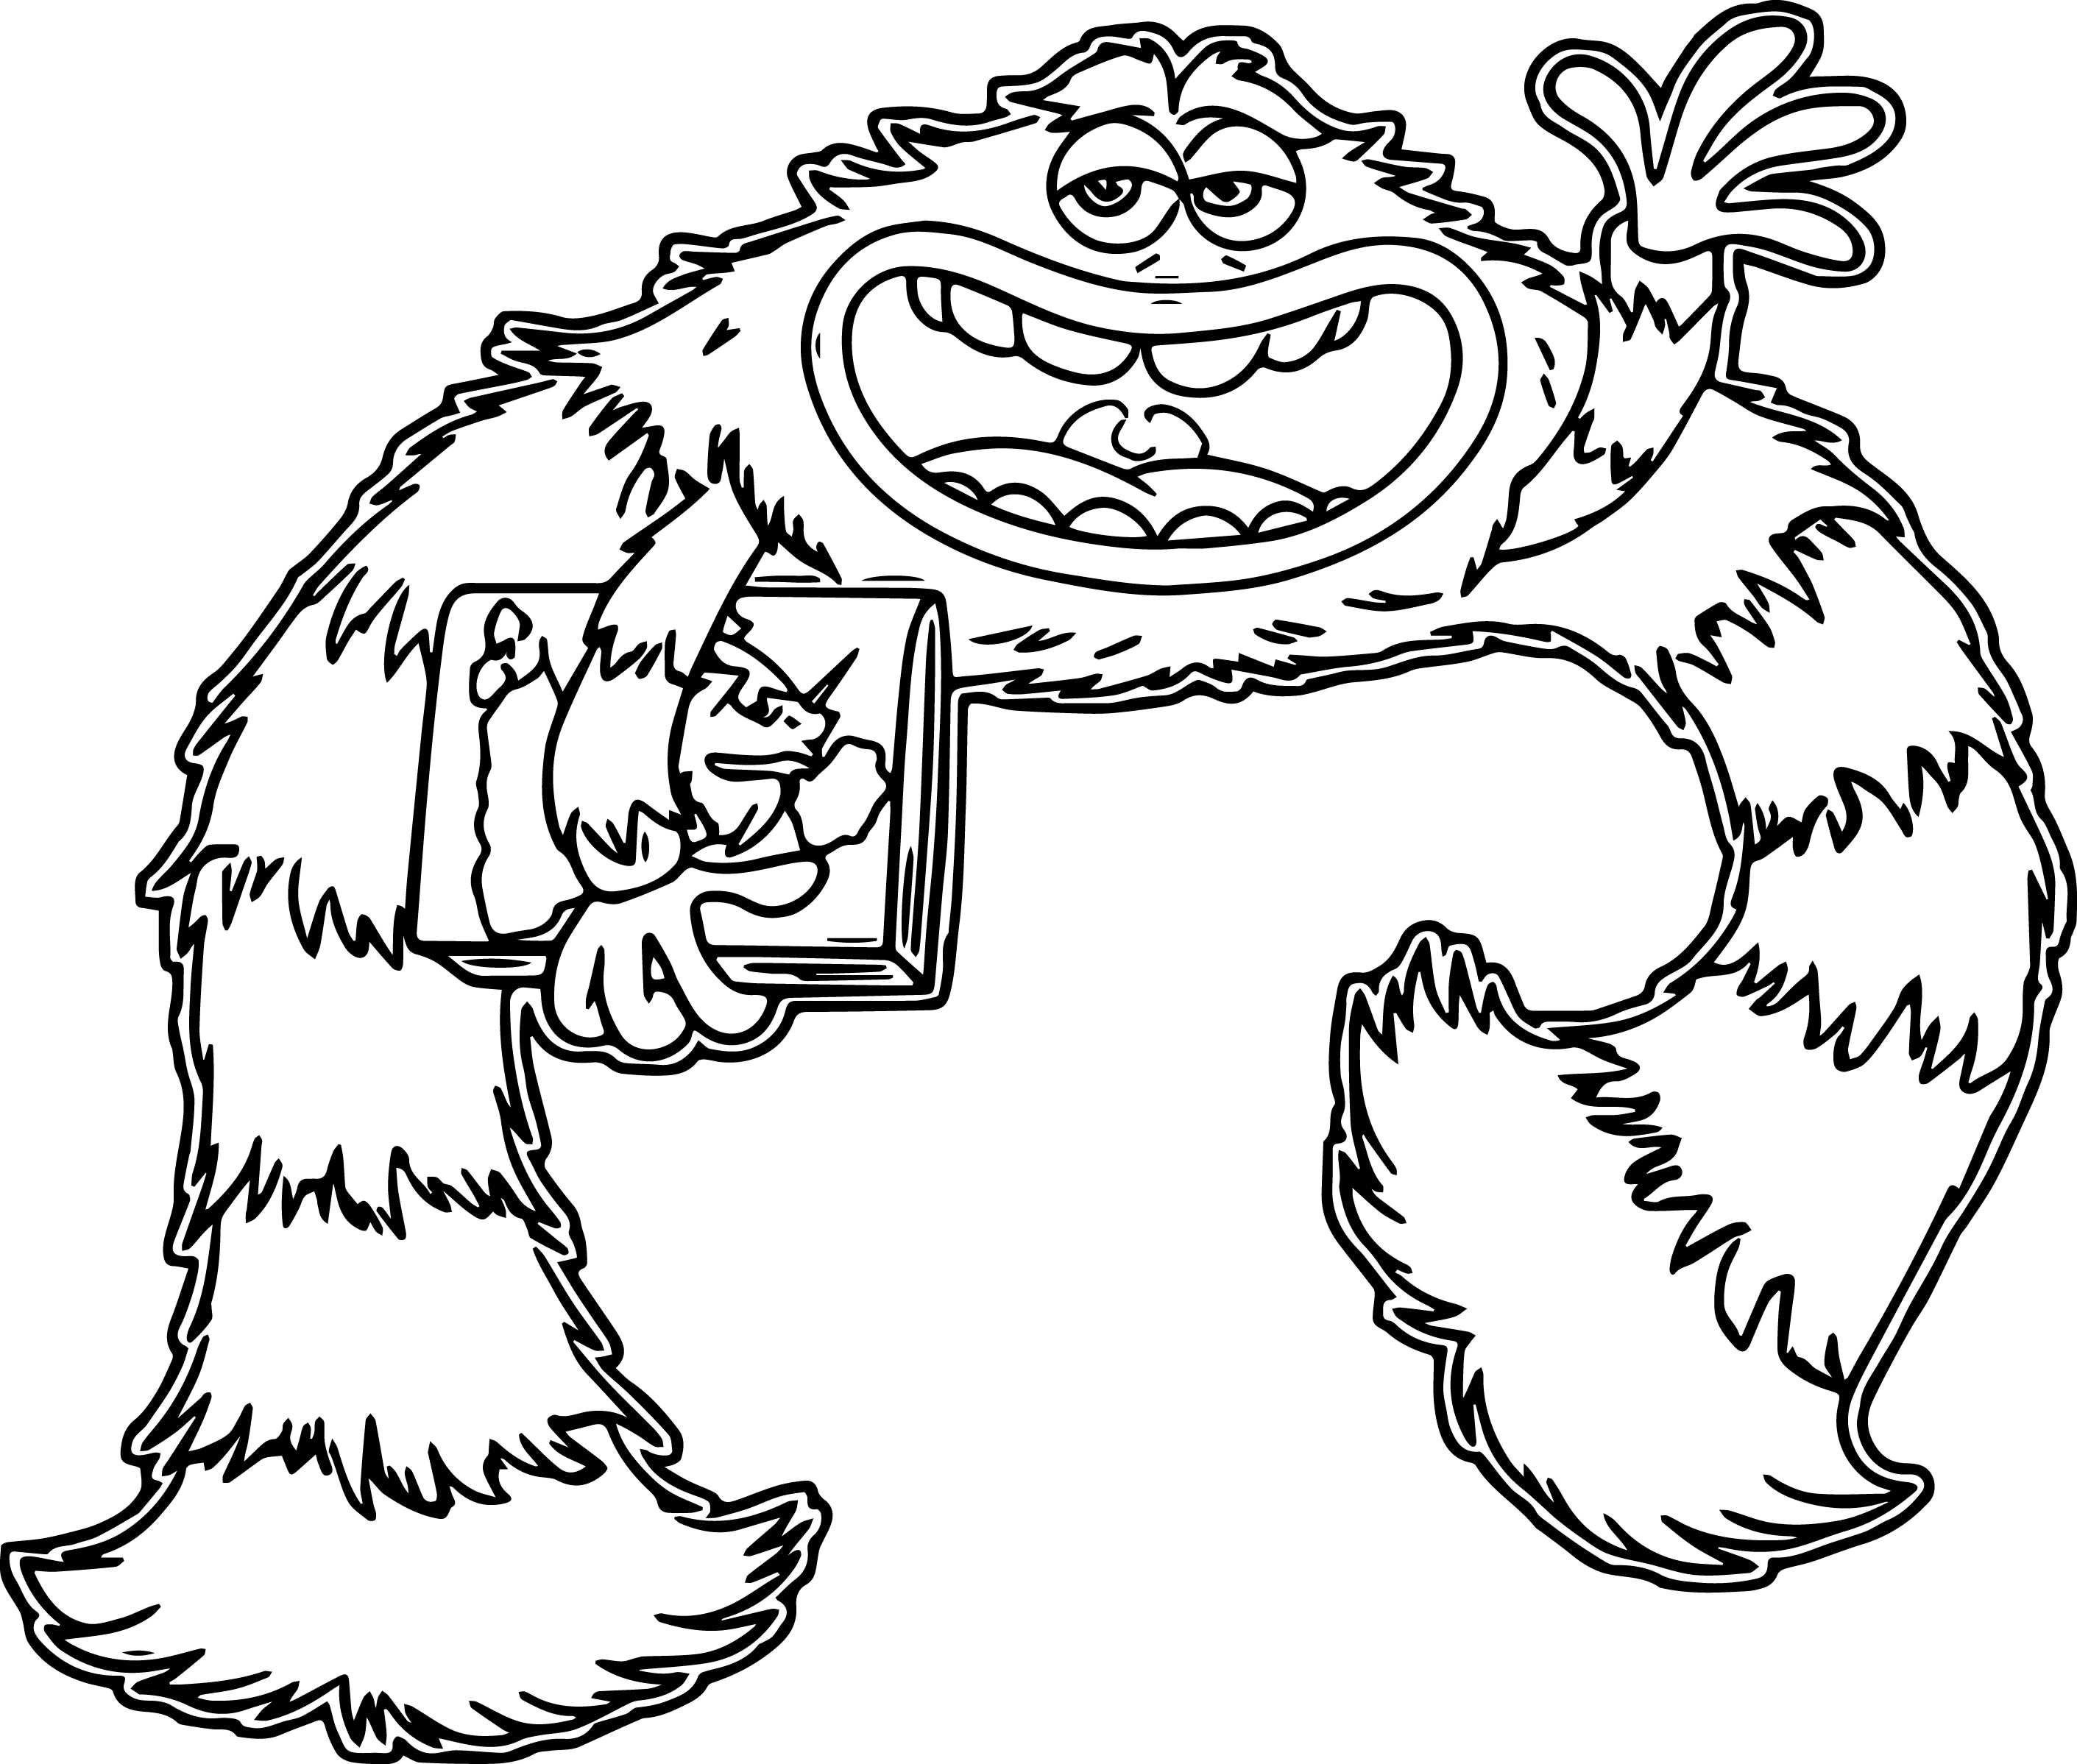 2822x2397 Randall And Mike From Monster Inc Coloring Pages For Kids Fresh